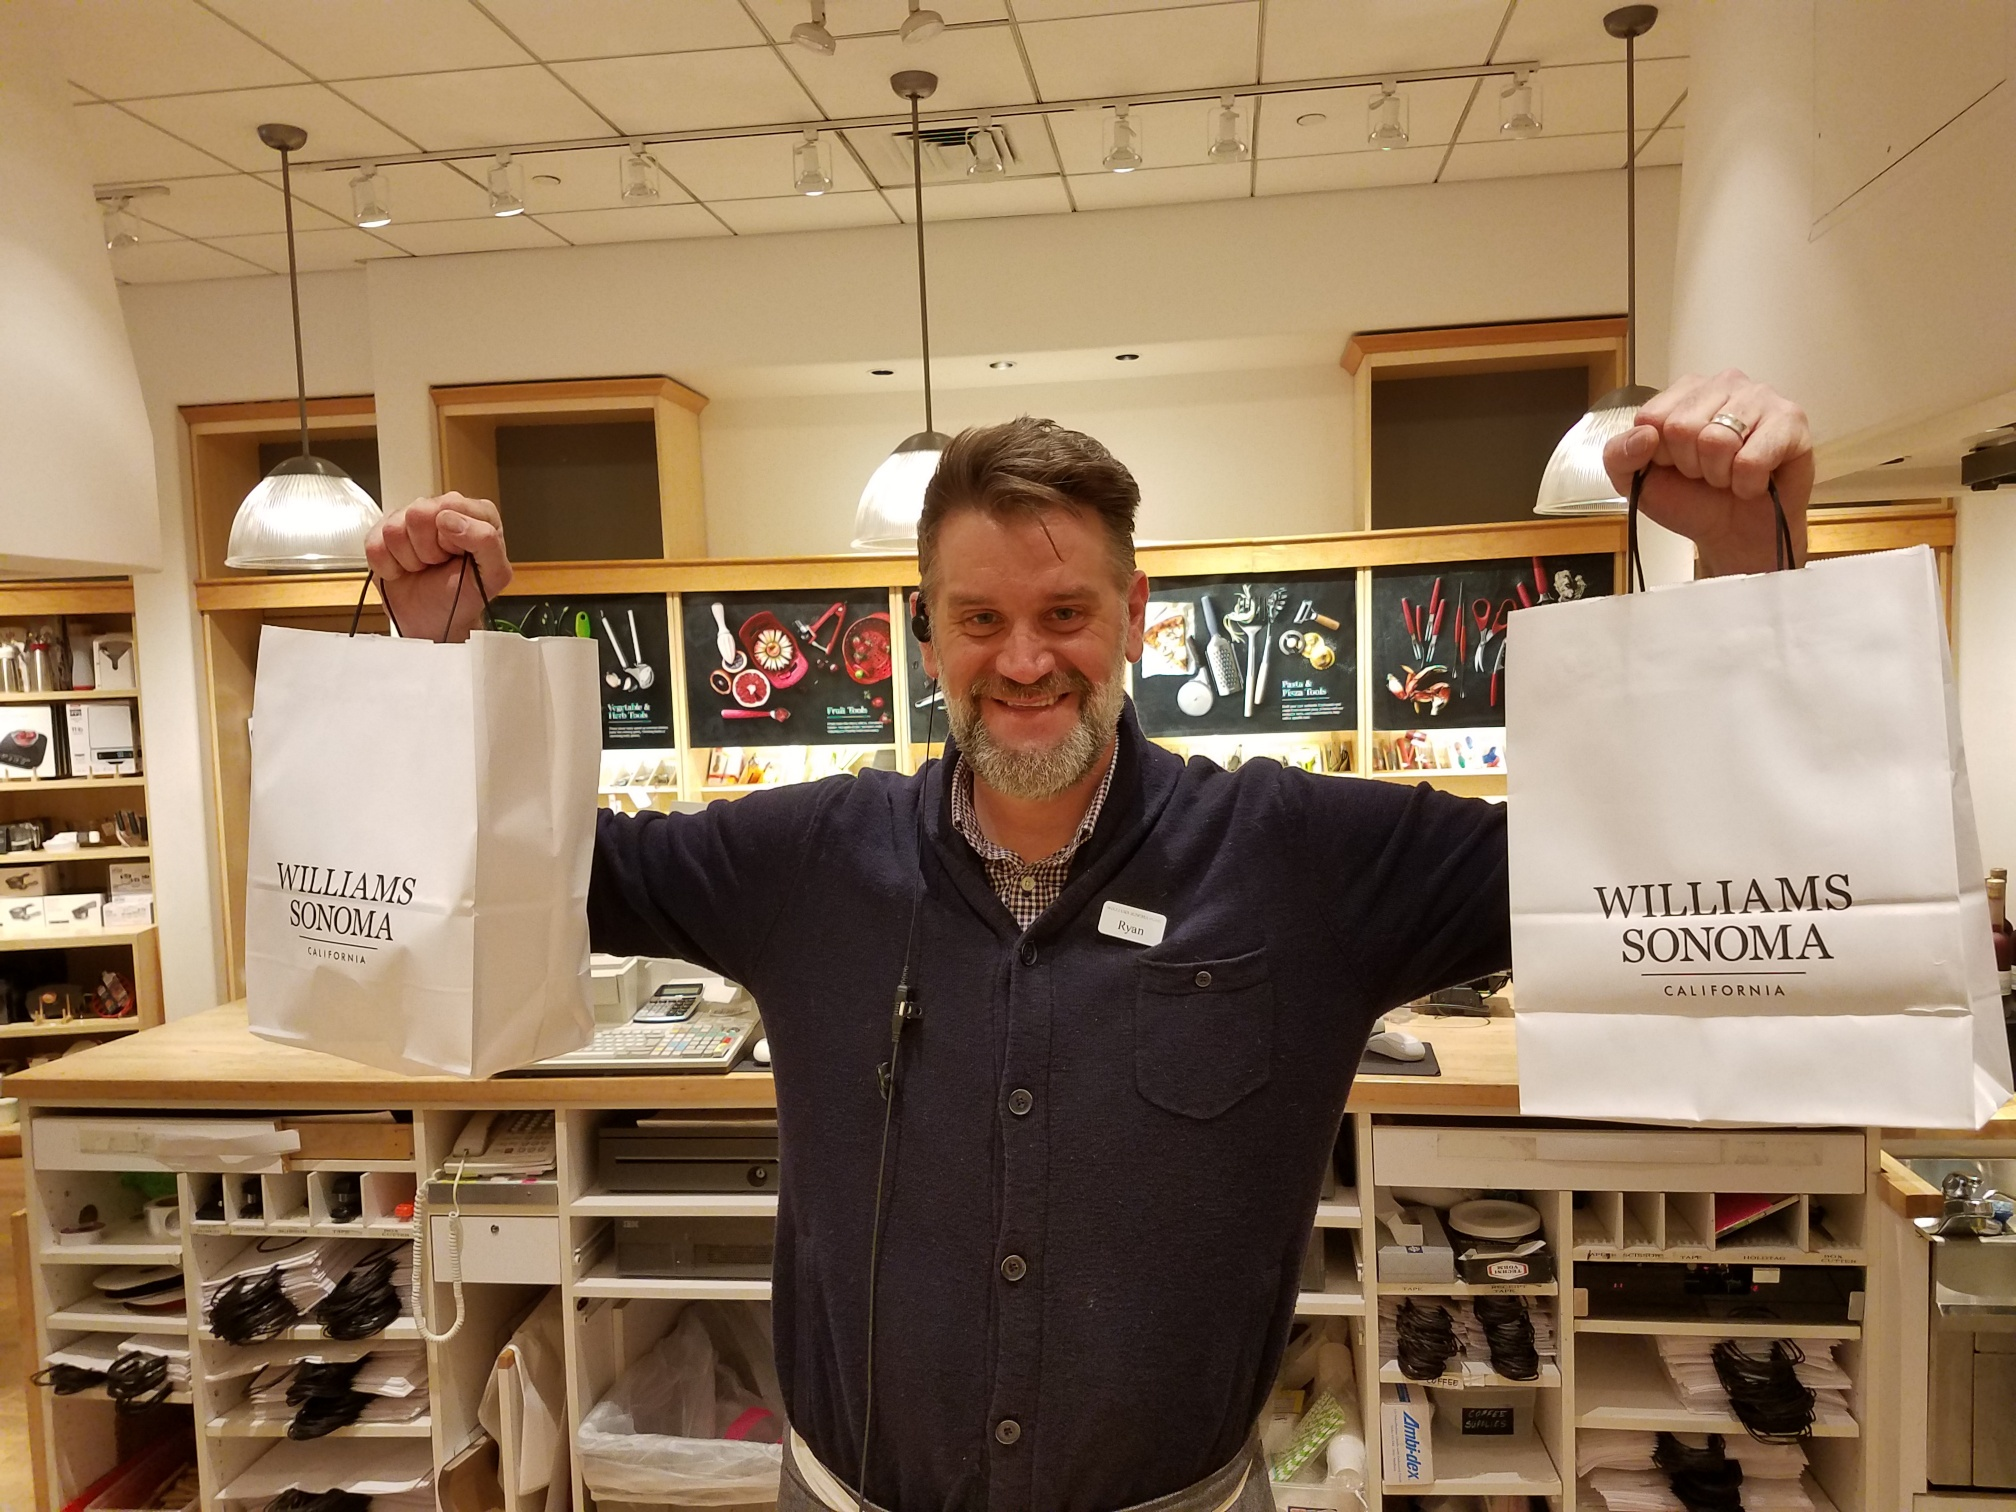 Ray, Williams and Sonoma